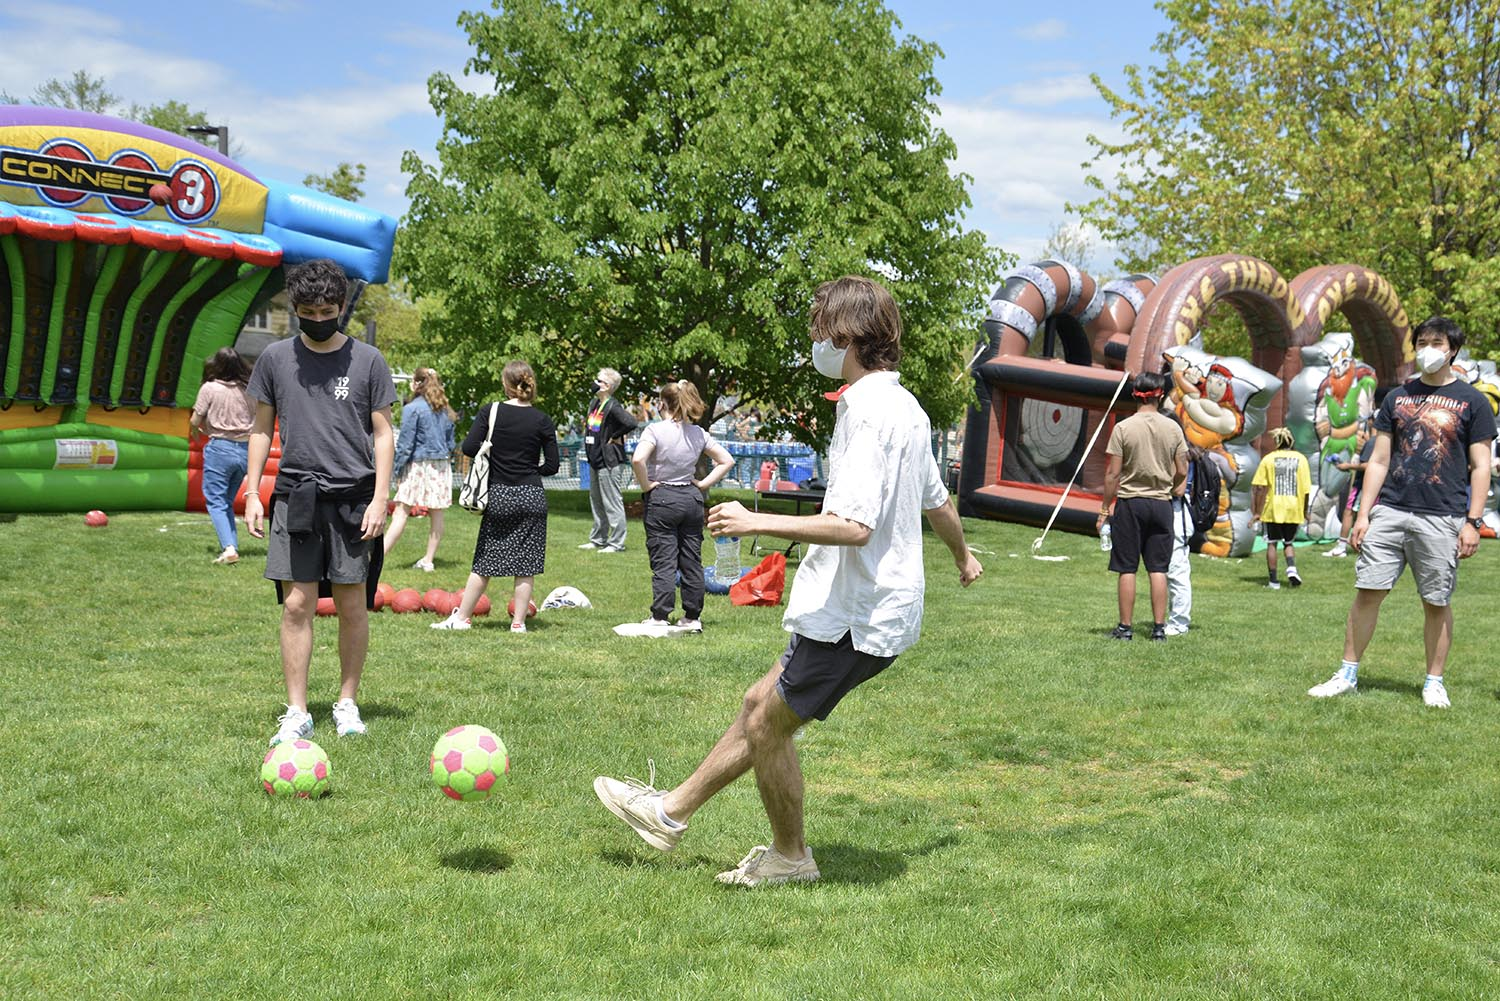 Tickets to the event were $6 and 100 percent of the proceeds were donated to the Middletown Mutual Aid Collective. Tickets holders gained access to a dozen carnival games, music by student bands, and meal options by four food trucks.